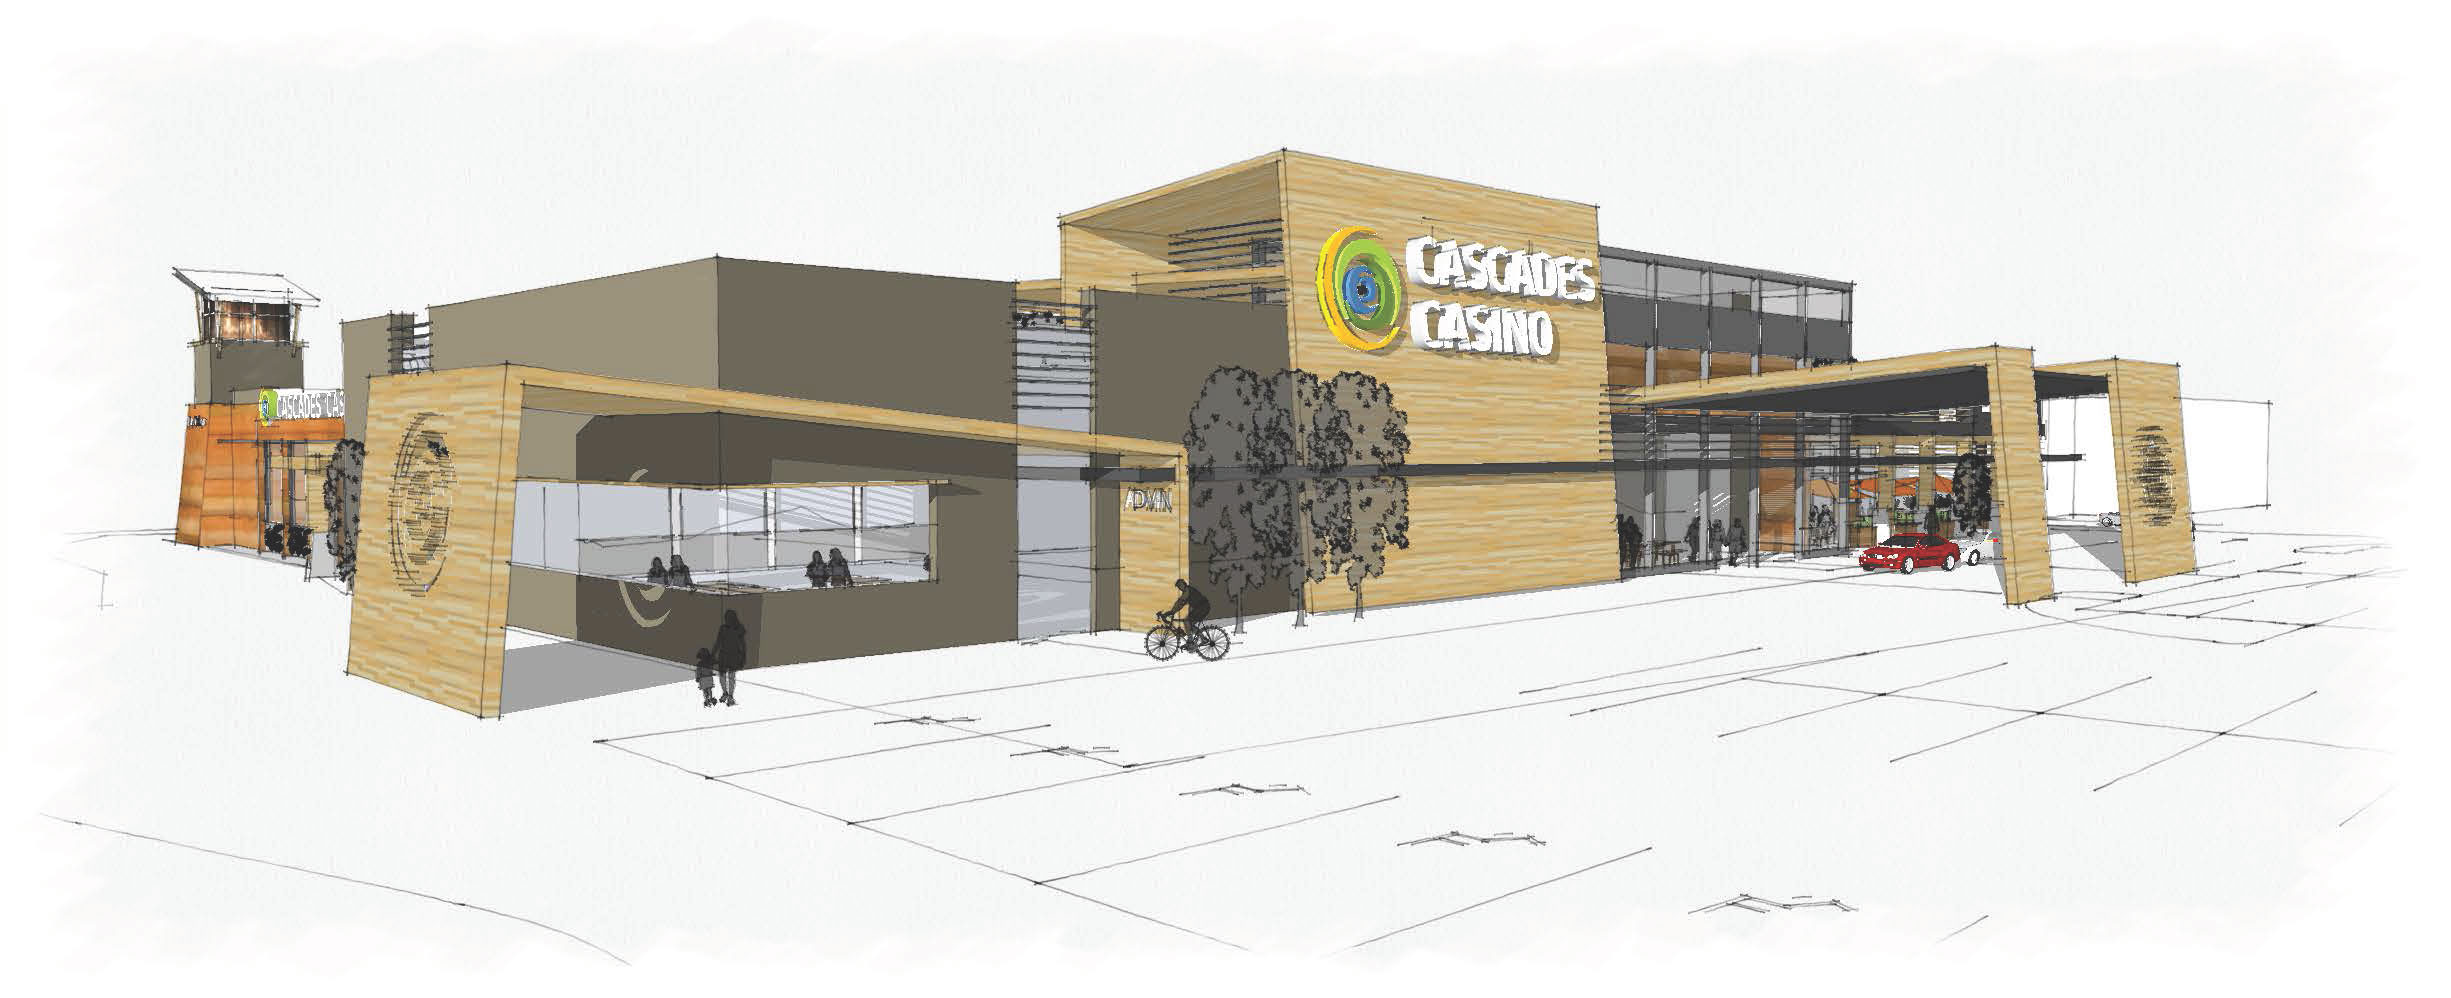 Cascades Casino Penticton gets green light